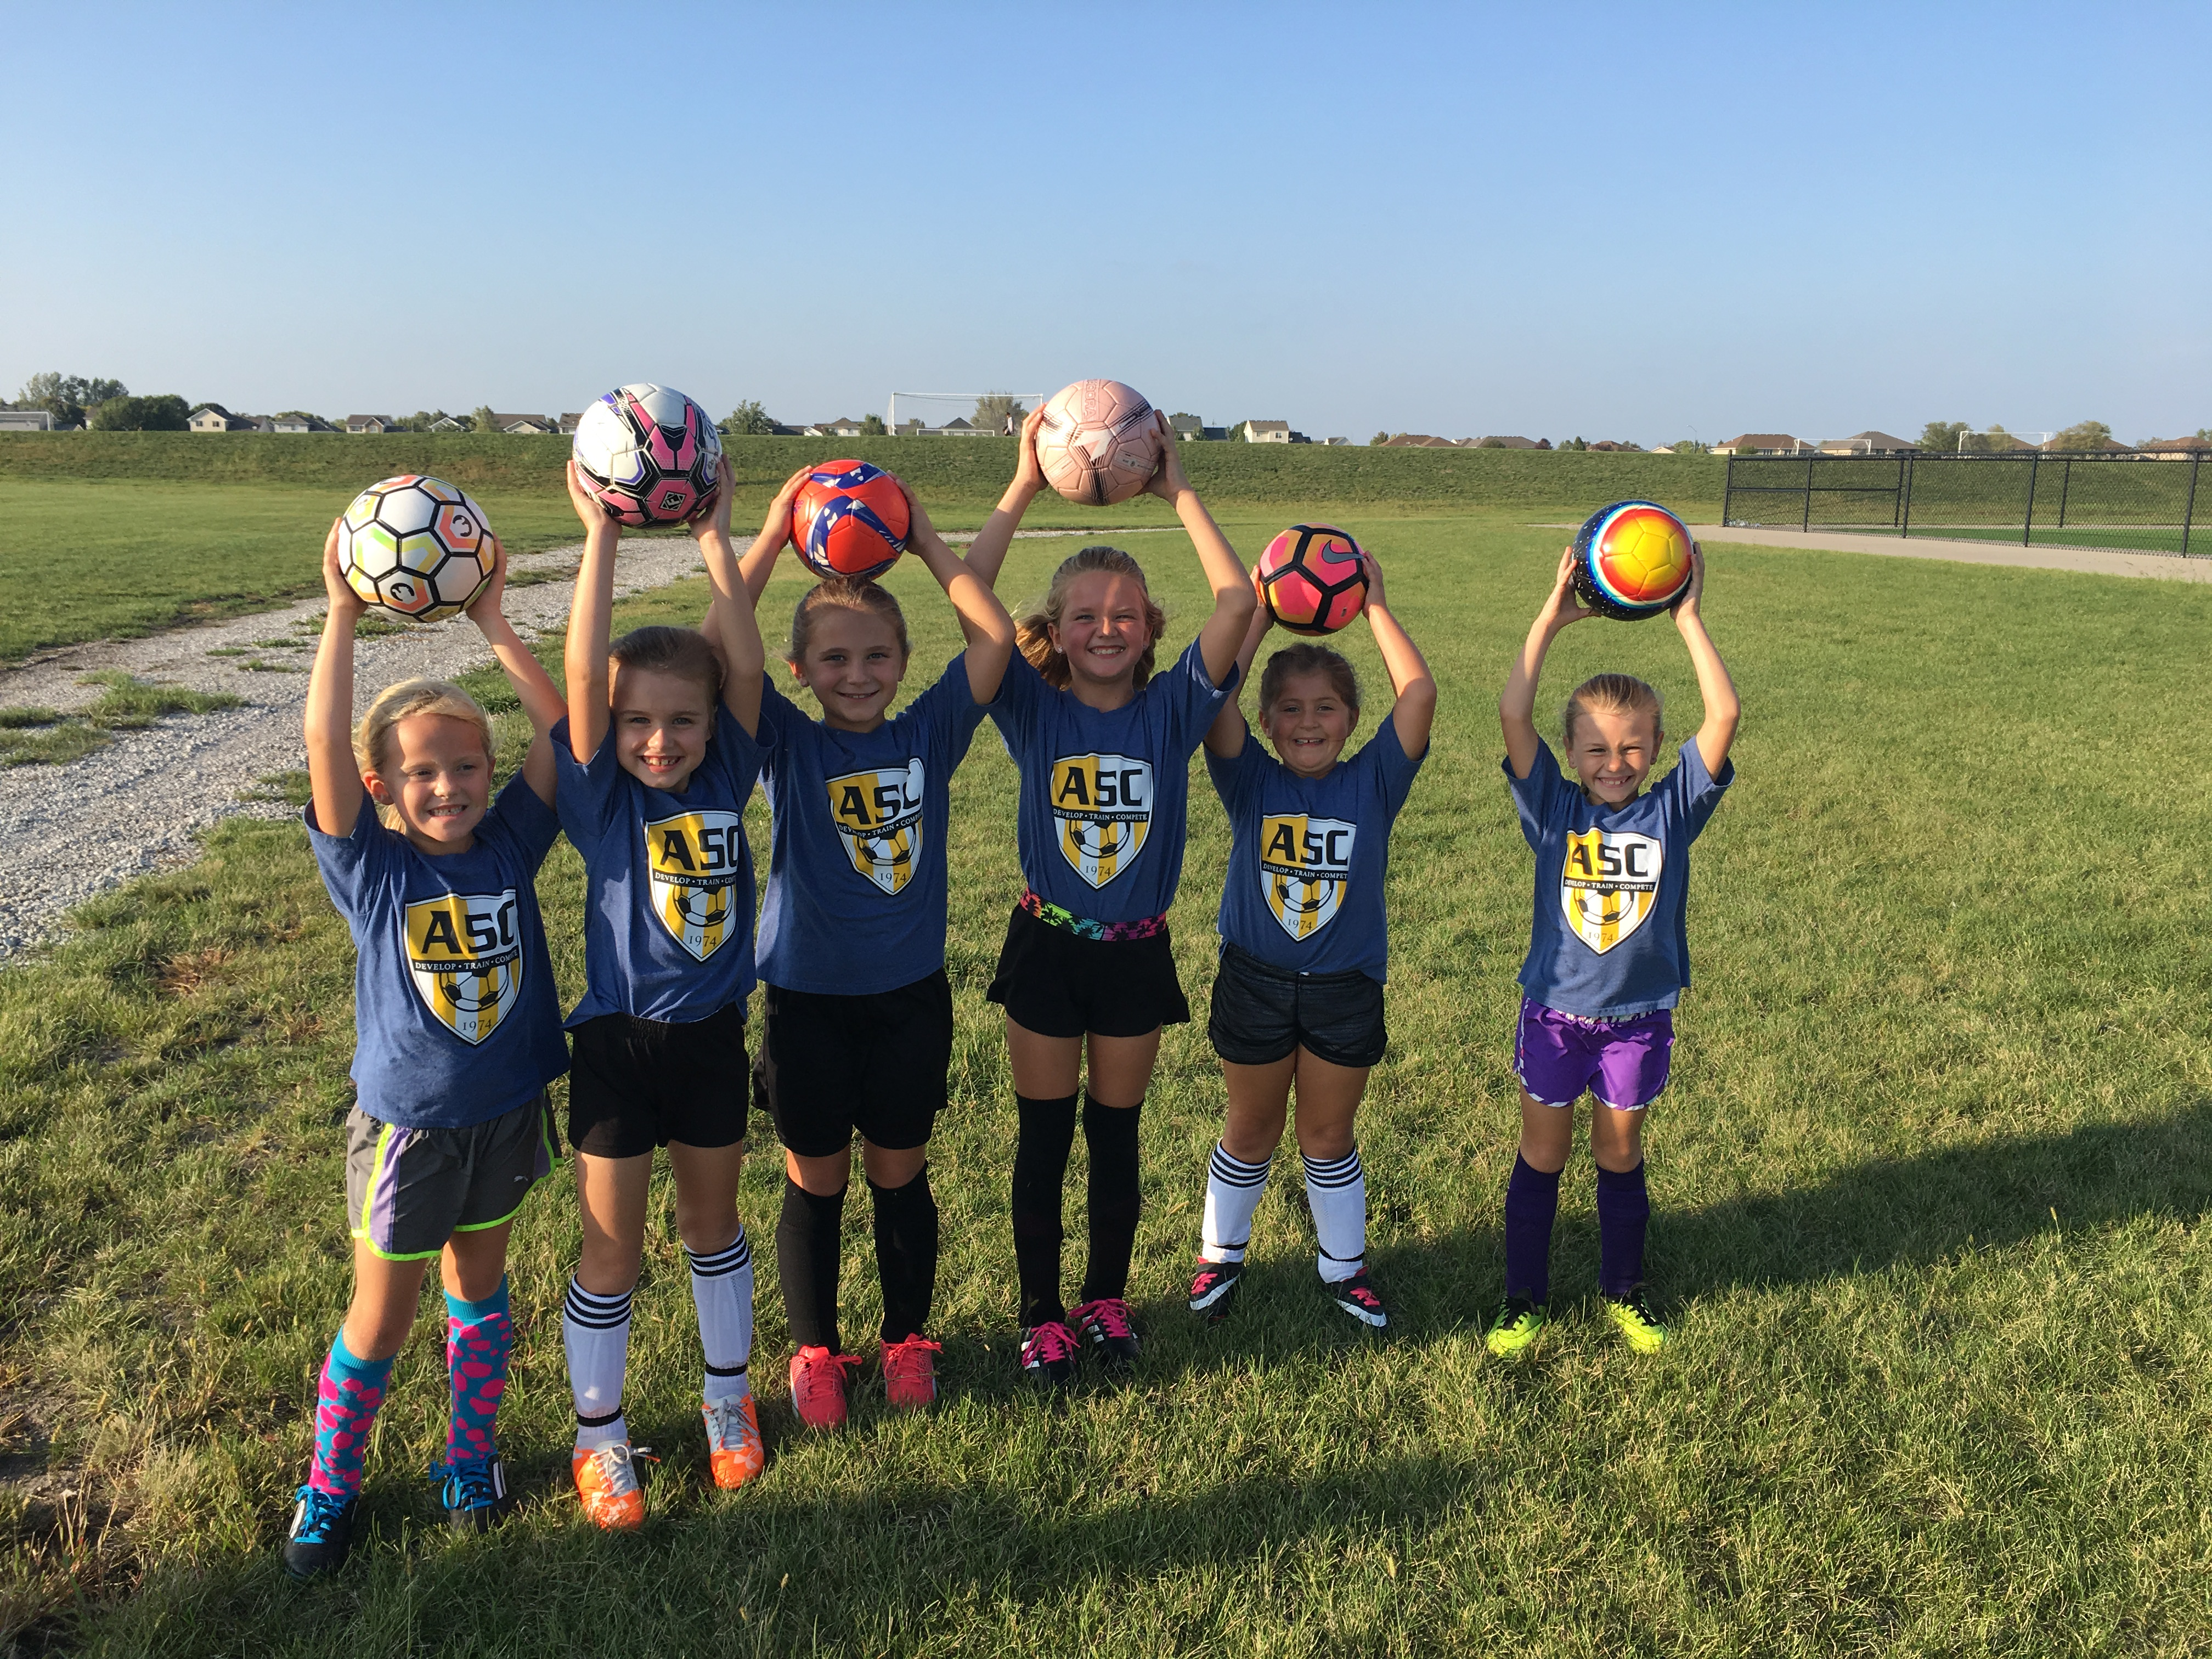 Providing Opportunities for Youth Soccer Players of All Abilities and Ages